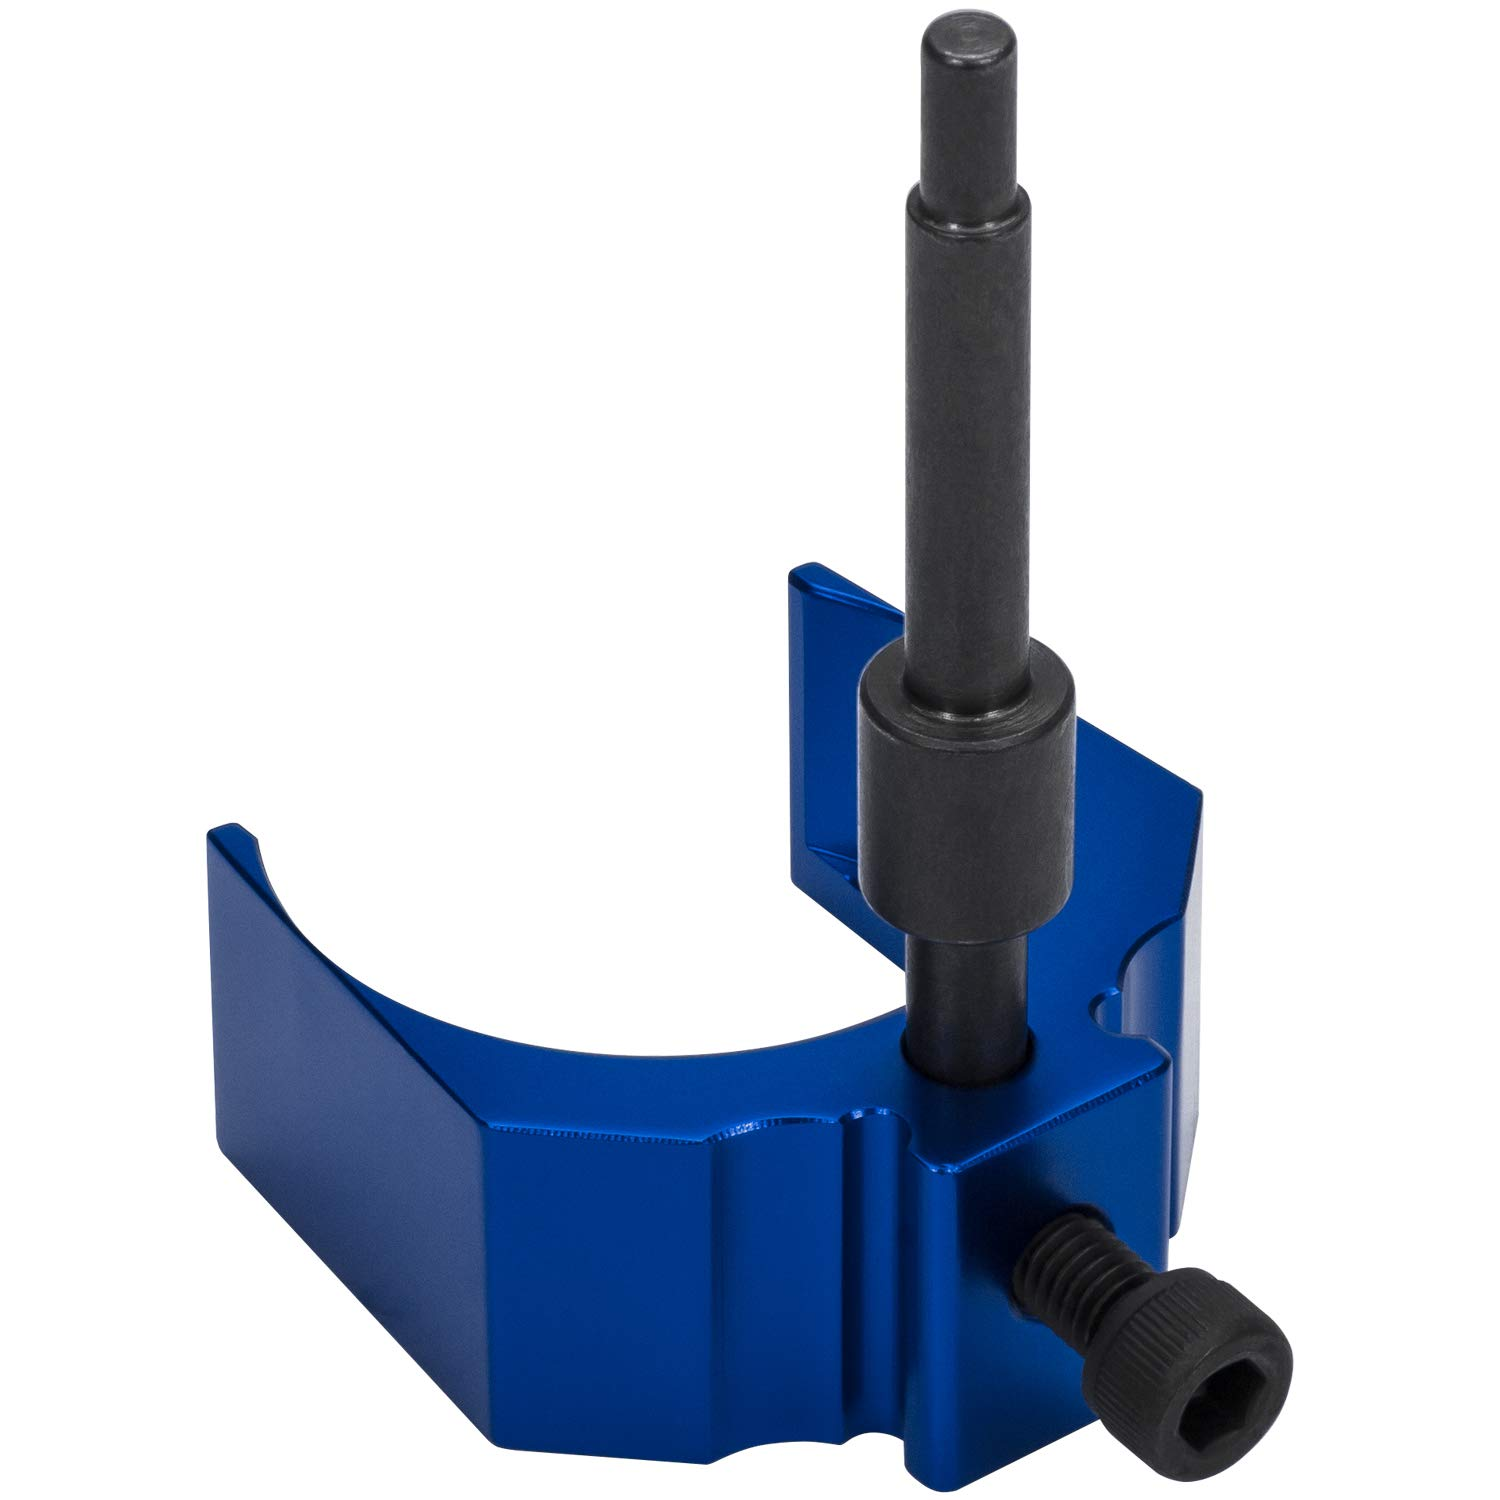 Sunluway for Caterpillar Injector Height Tool for Caterpiller 3406E, C-15  and C-16, Alternative to 9U-7227(Blue)